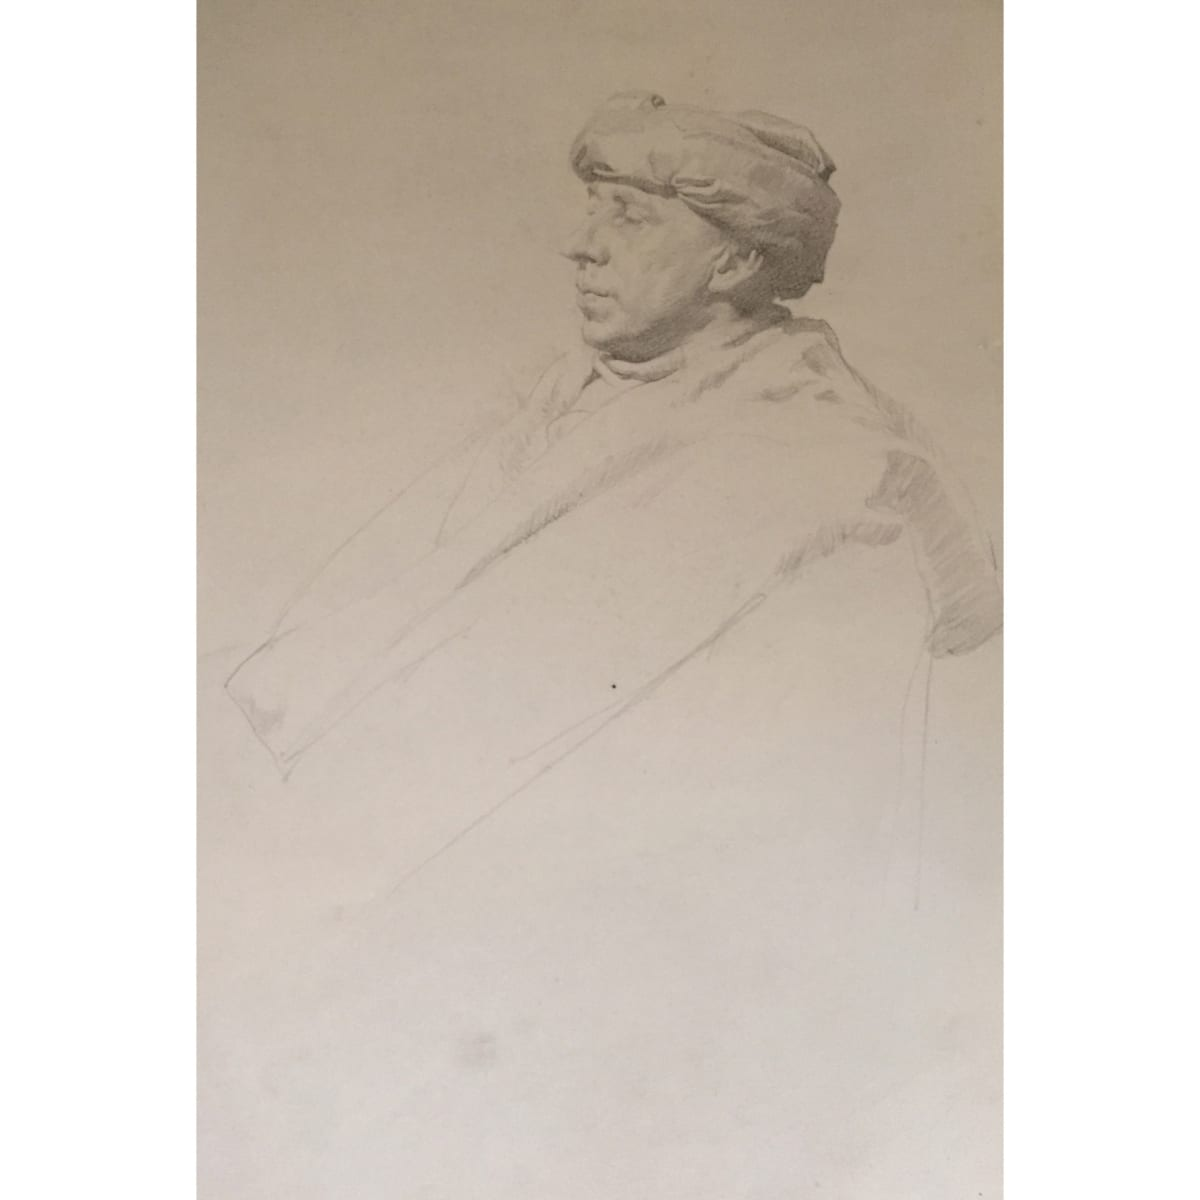 John Bulloch Souter Man with Turban pencil on paper 14 x 10 inches